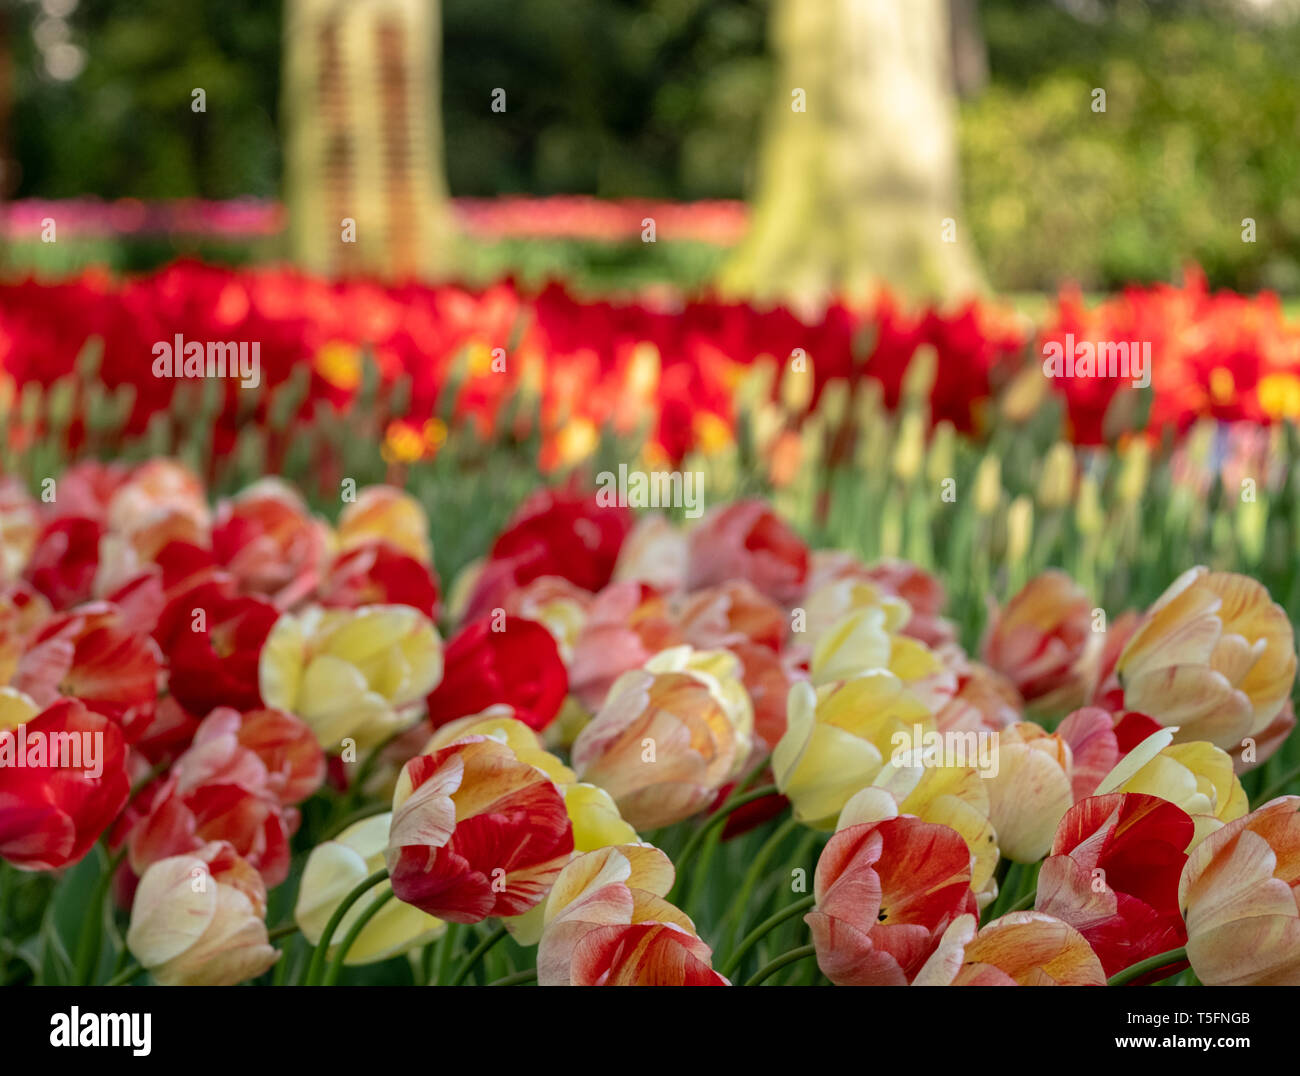 Tulips underneath the trees at Keukenhof Gardens, Lisse, Netherlands. Lisse is the centre of Holland's floriculture industry. - Stock Image